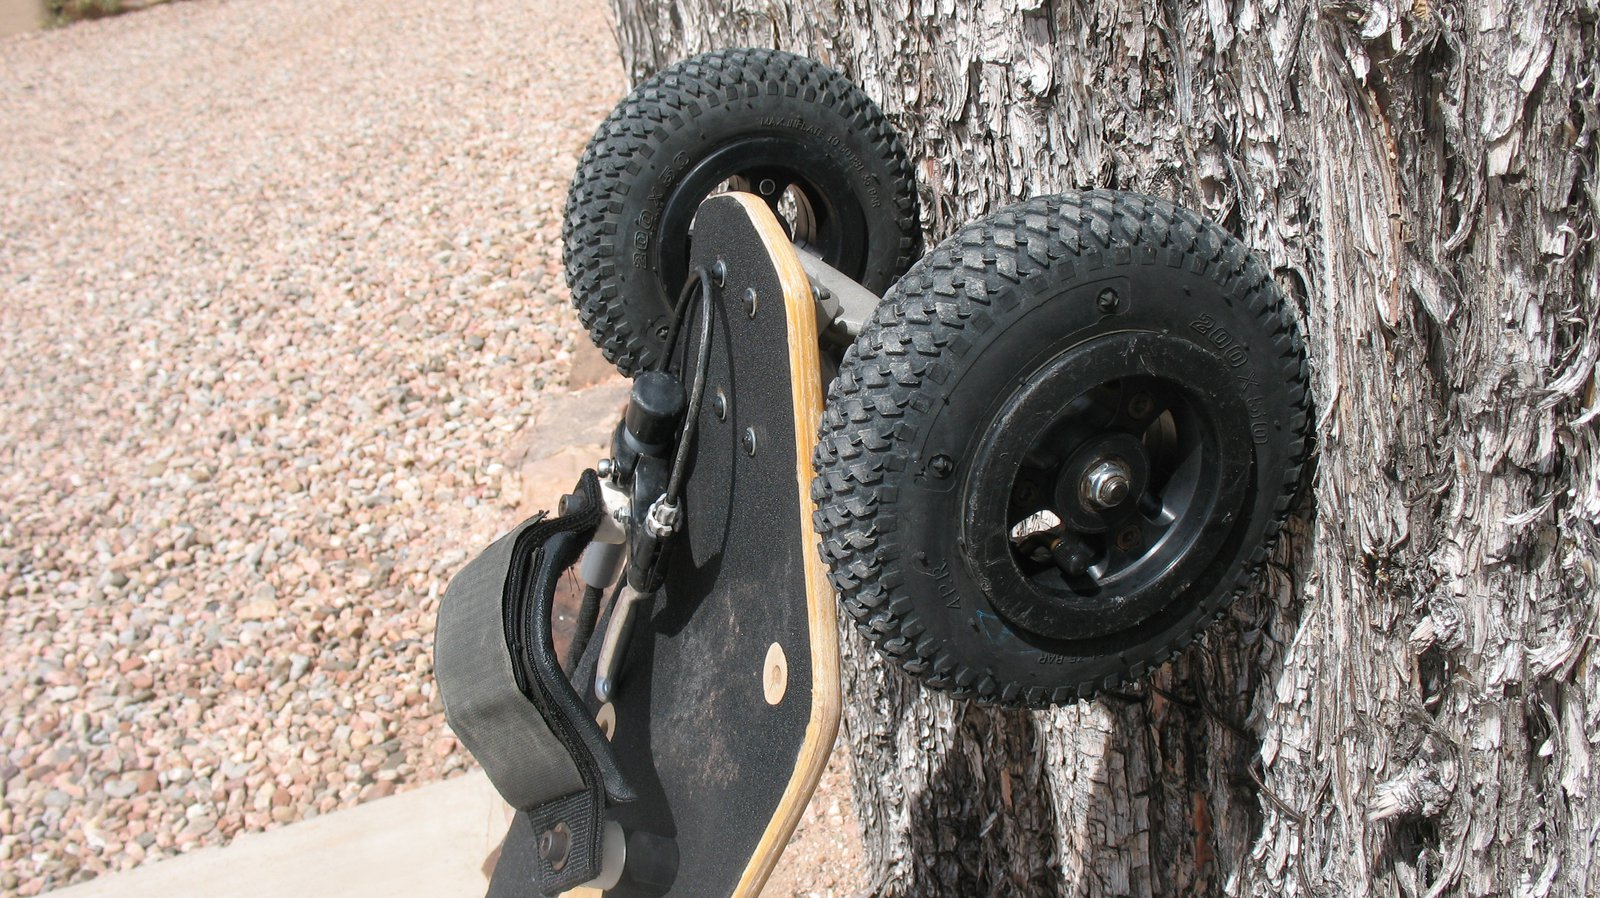 MBS Mountainboard